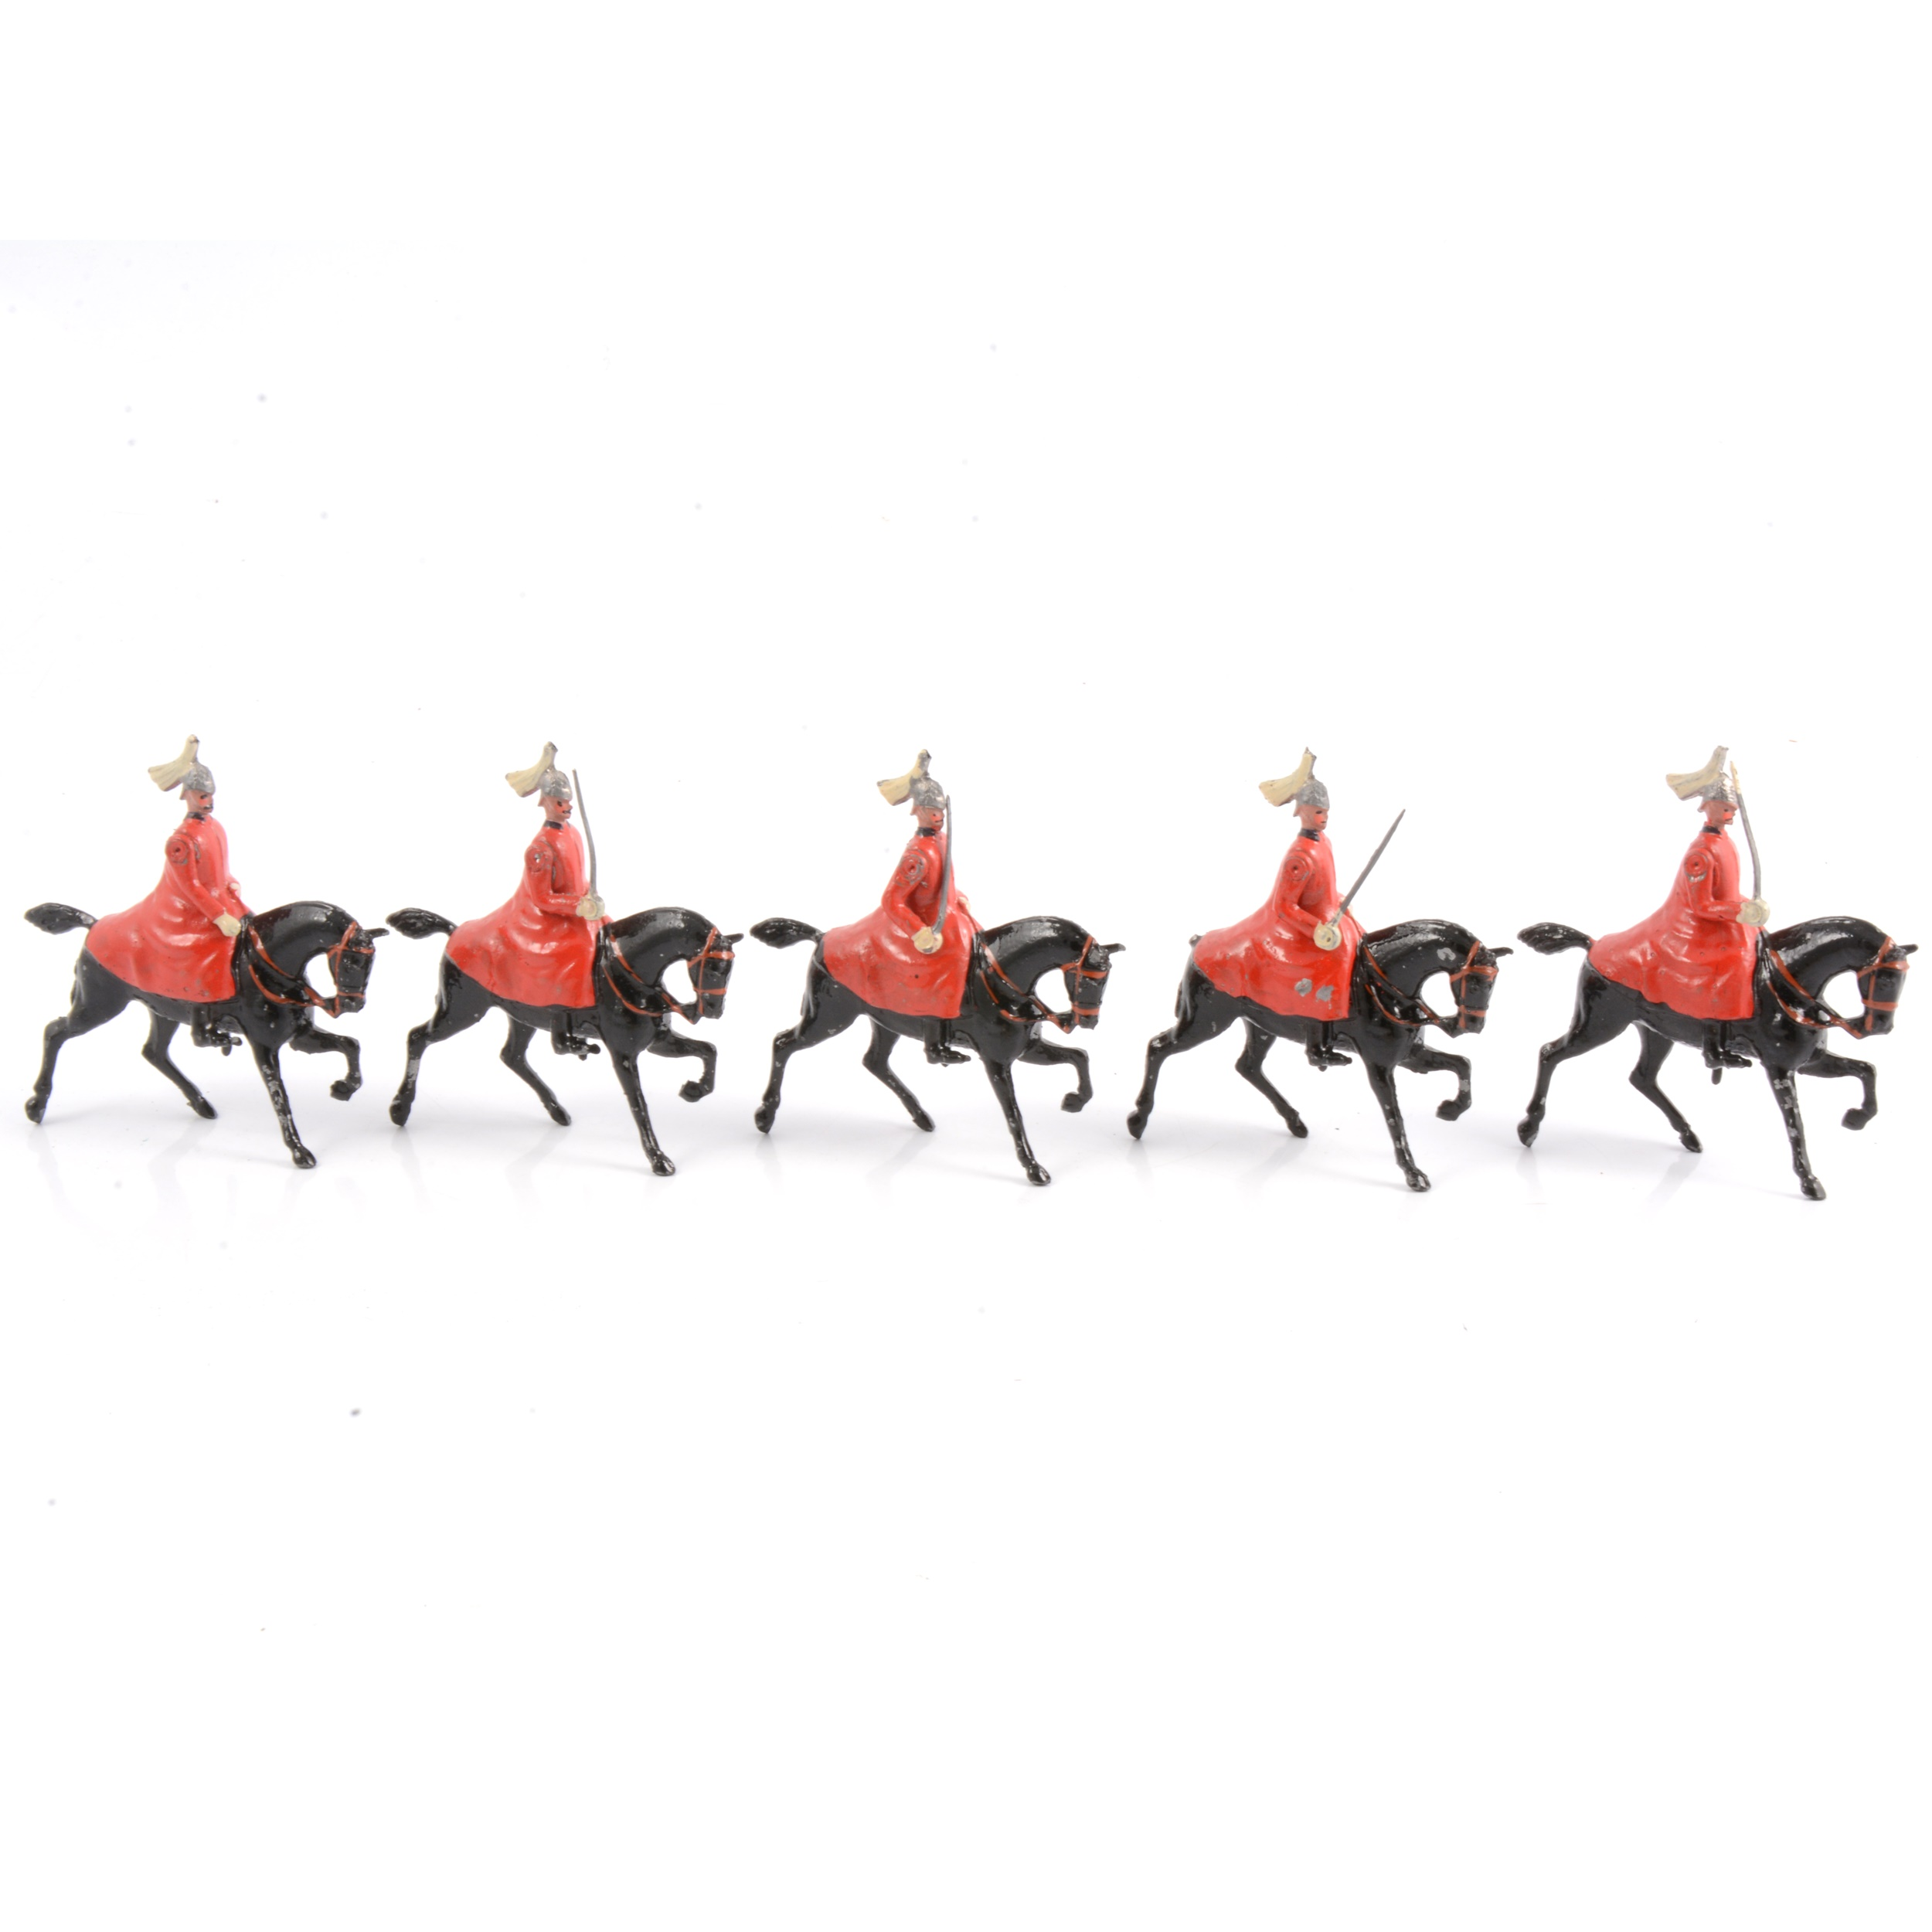 Britains lead-painted figures, Life Guards in winter coats set no.400